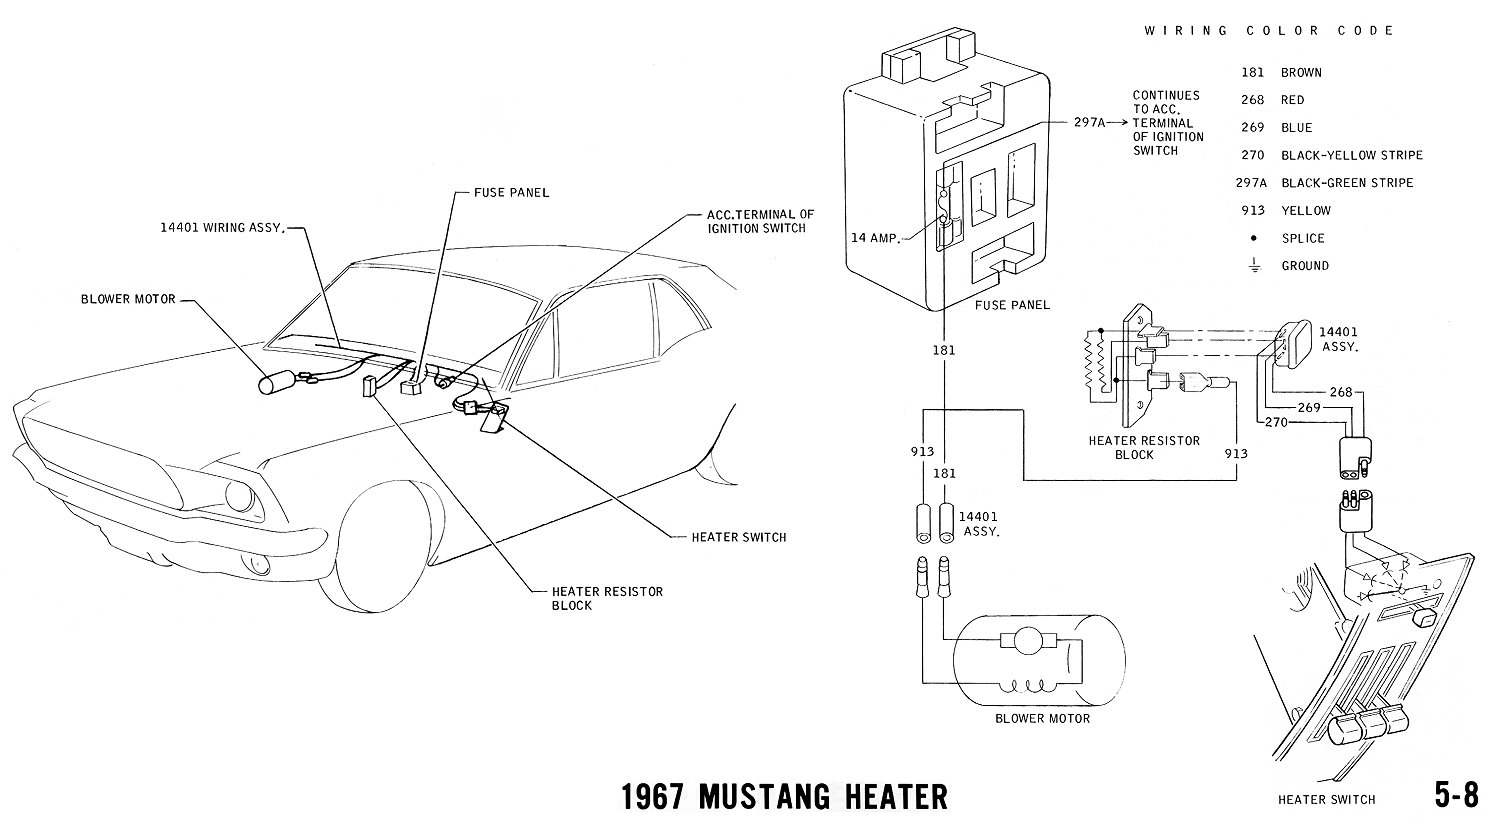 67heater 1967 mustang wiring and vacuum diagrams average joe restoration 1970 mustang fuse box diagram at virtualis.co